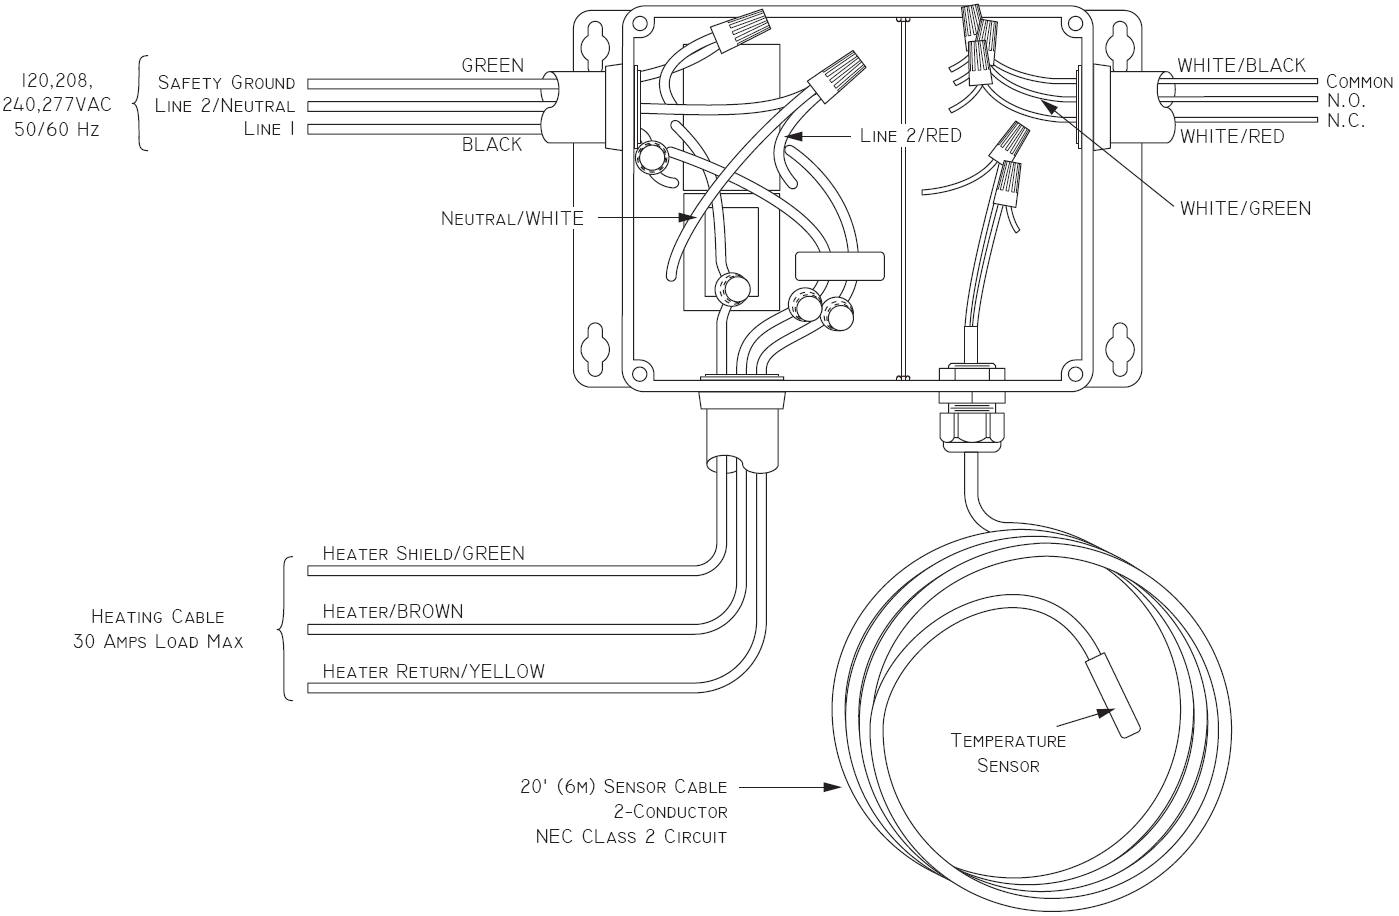 Wiring Diagram For Omni Waste Oil Heater